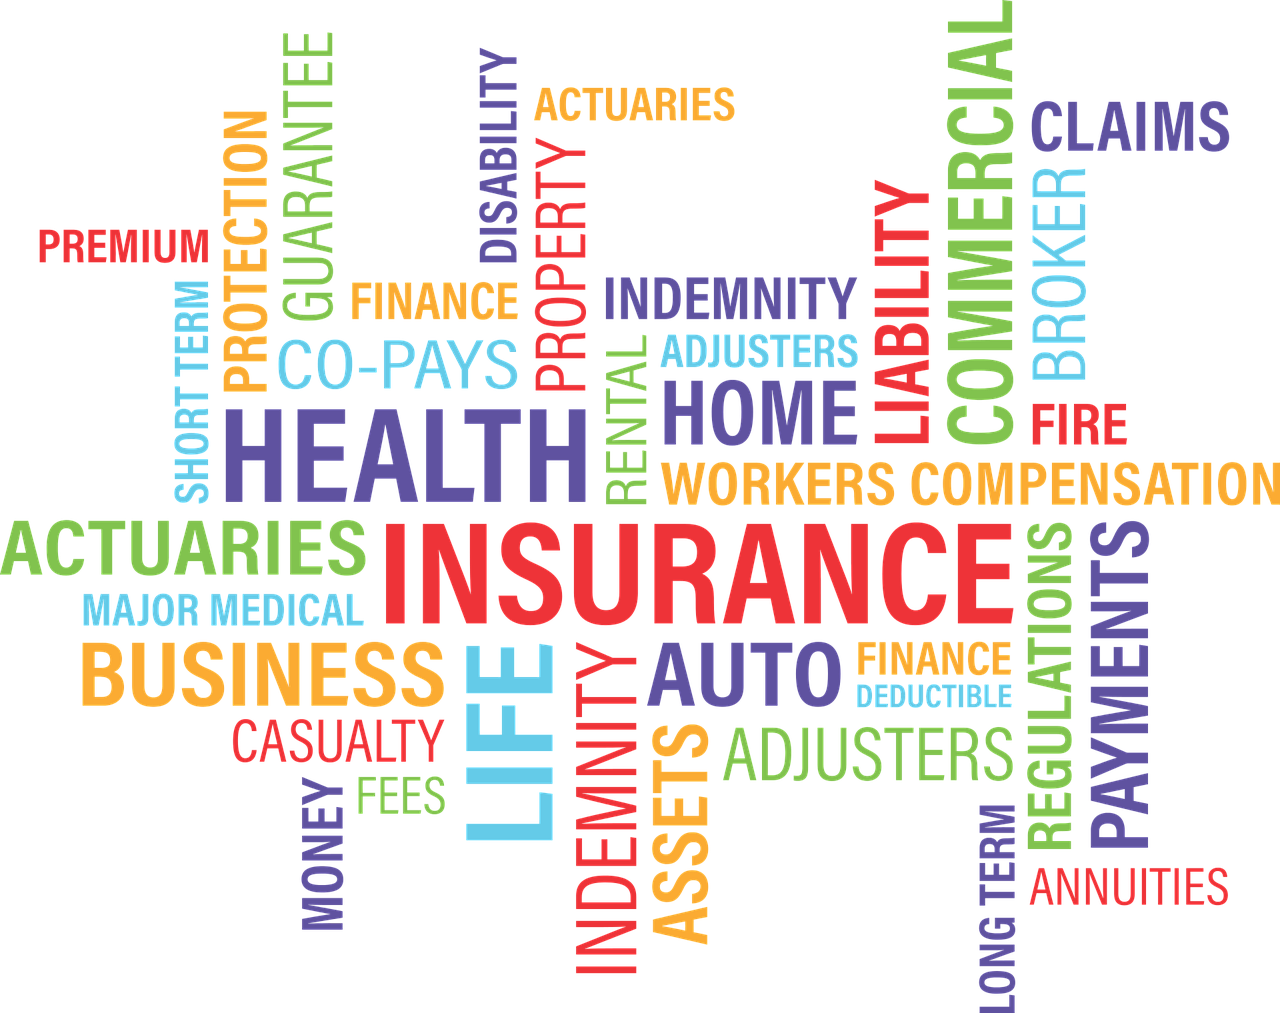 Business Insurance. Find out where to obtain cheap small business insurance and the advantages and disadvantages of having business insurance